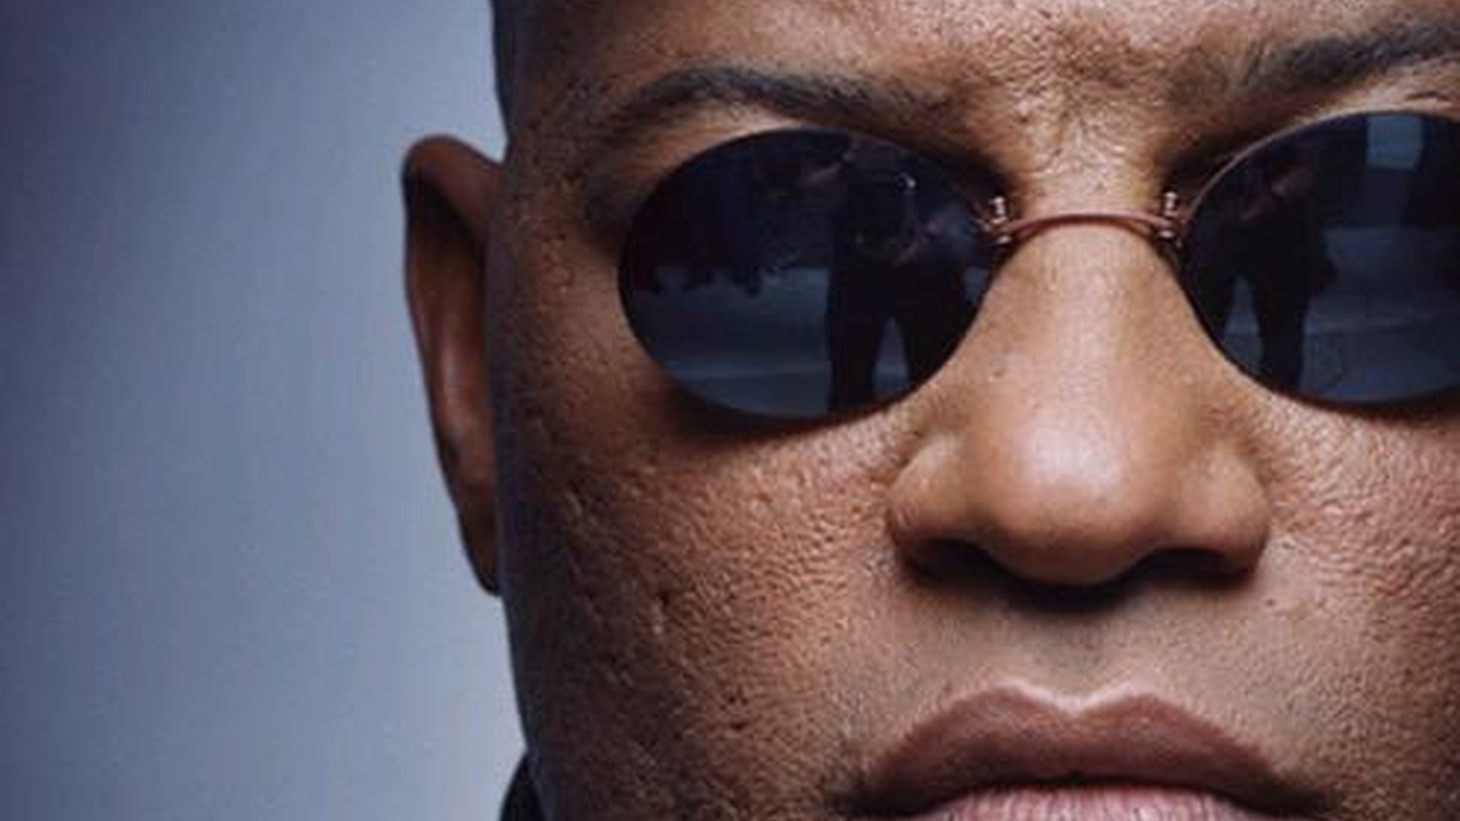 Laurence Fishburne has won an Emmy, Tony and been nominated for an Oscar. He moves from film to TV to the stage for these. He talks of transitions and playing Thurgood Marshall, both on stage and in the HBO filmed version.